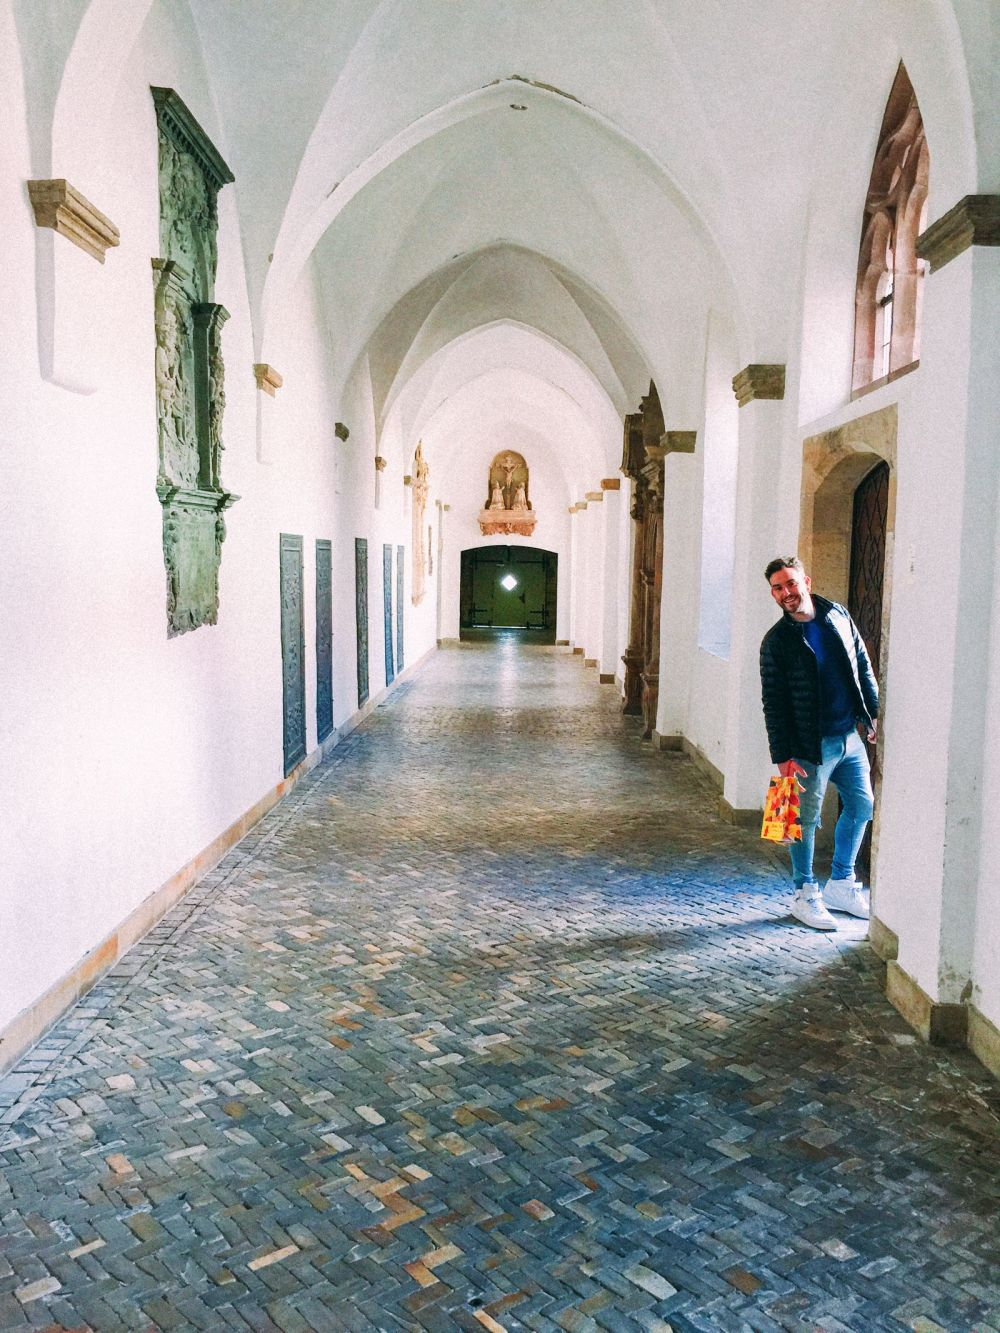 Have You Ever Heard Of This Little Place In Germany Called Paderborn? (32)